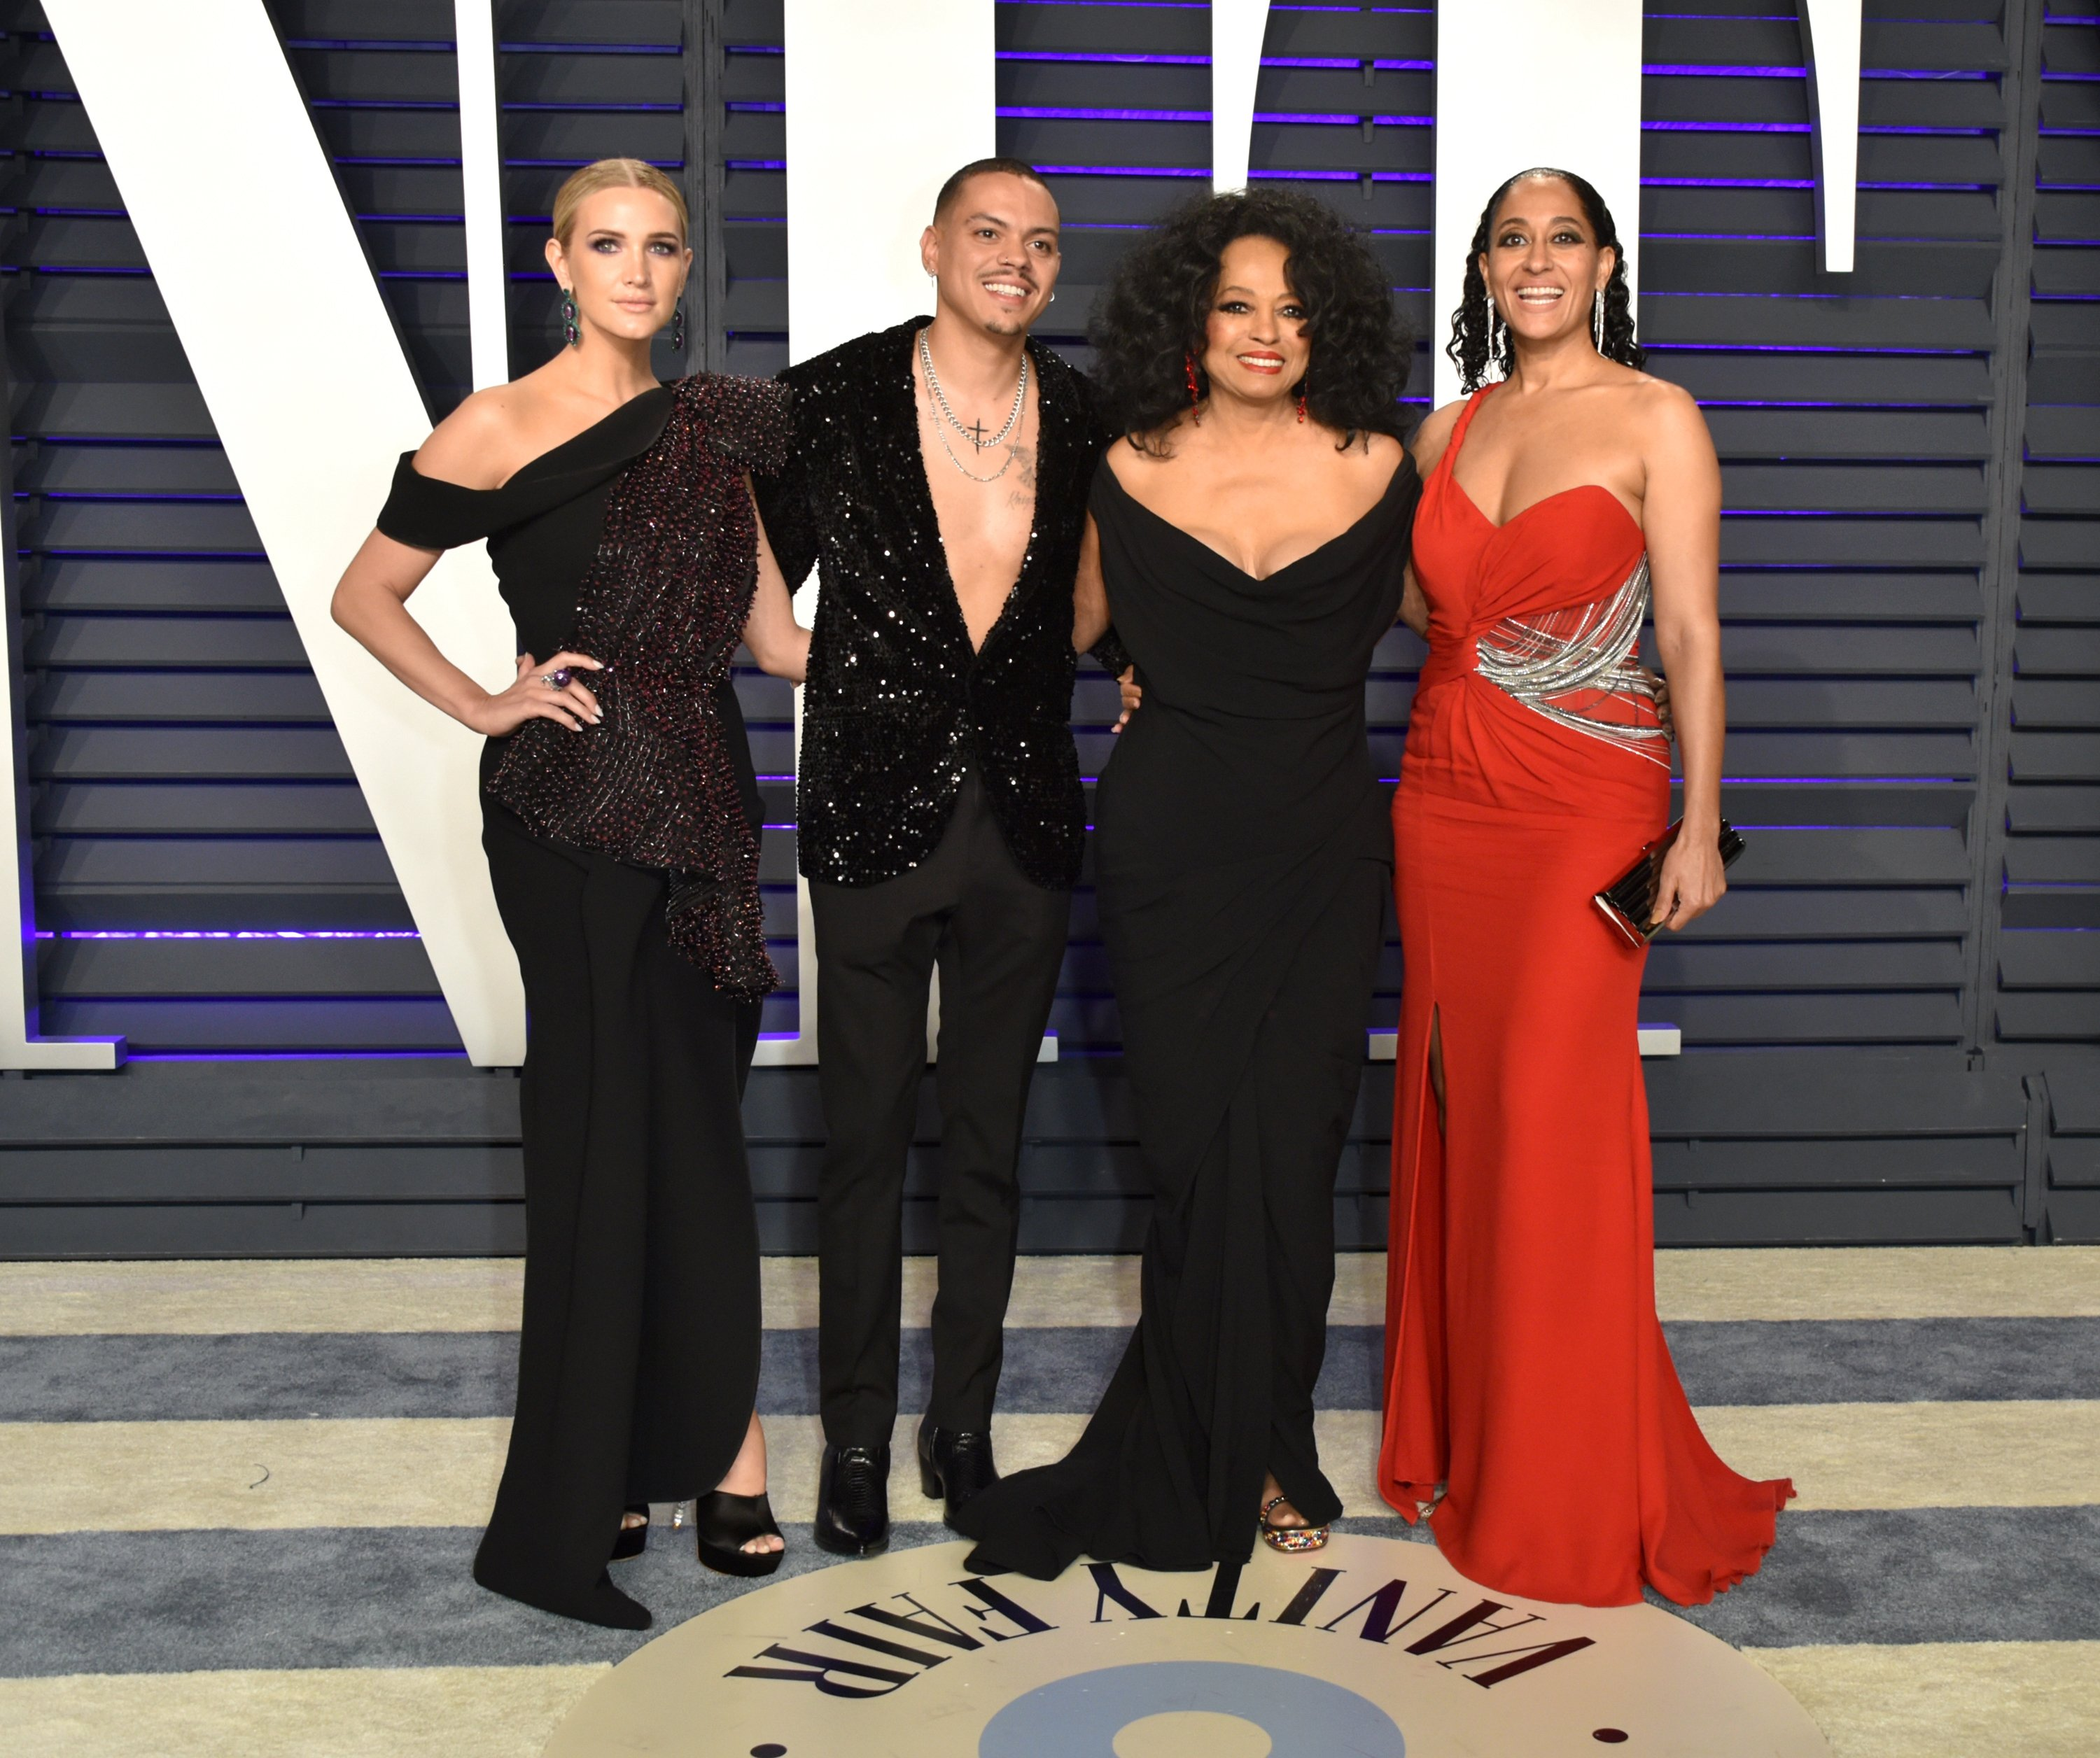 Ashlee Simpson, Evan Ross, Diana Ross, and Tracee Ellis Ross at  the 2019 Vanity Fair Oscar Party | Photo: Getty Images